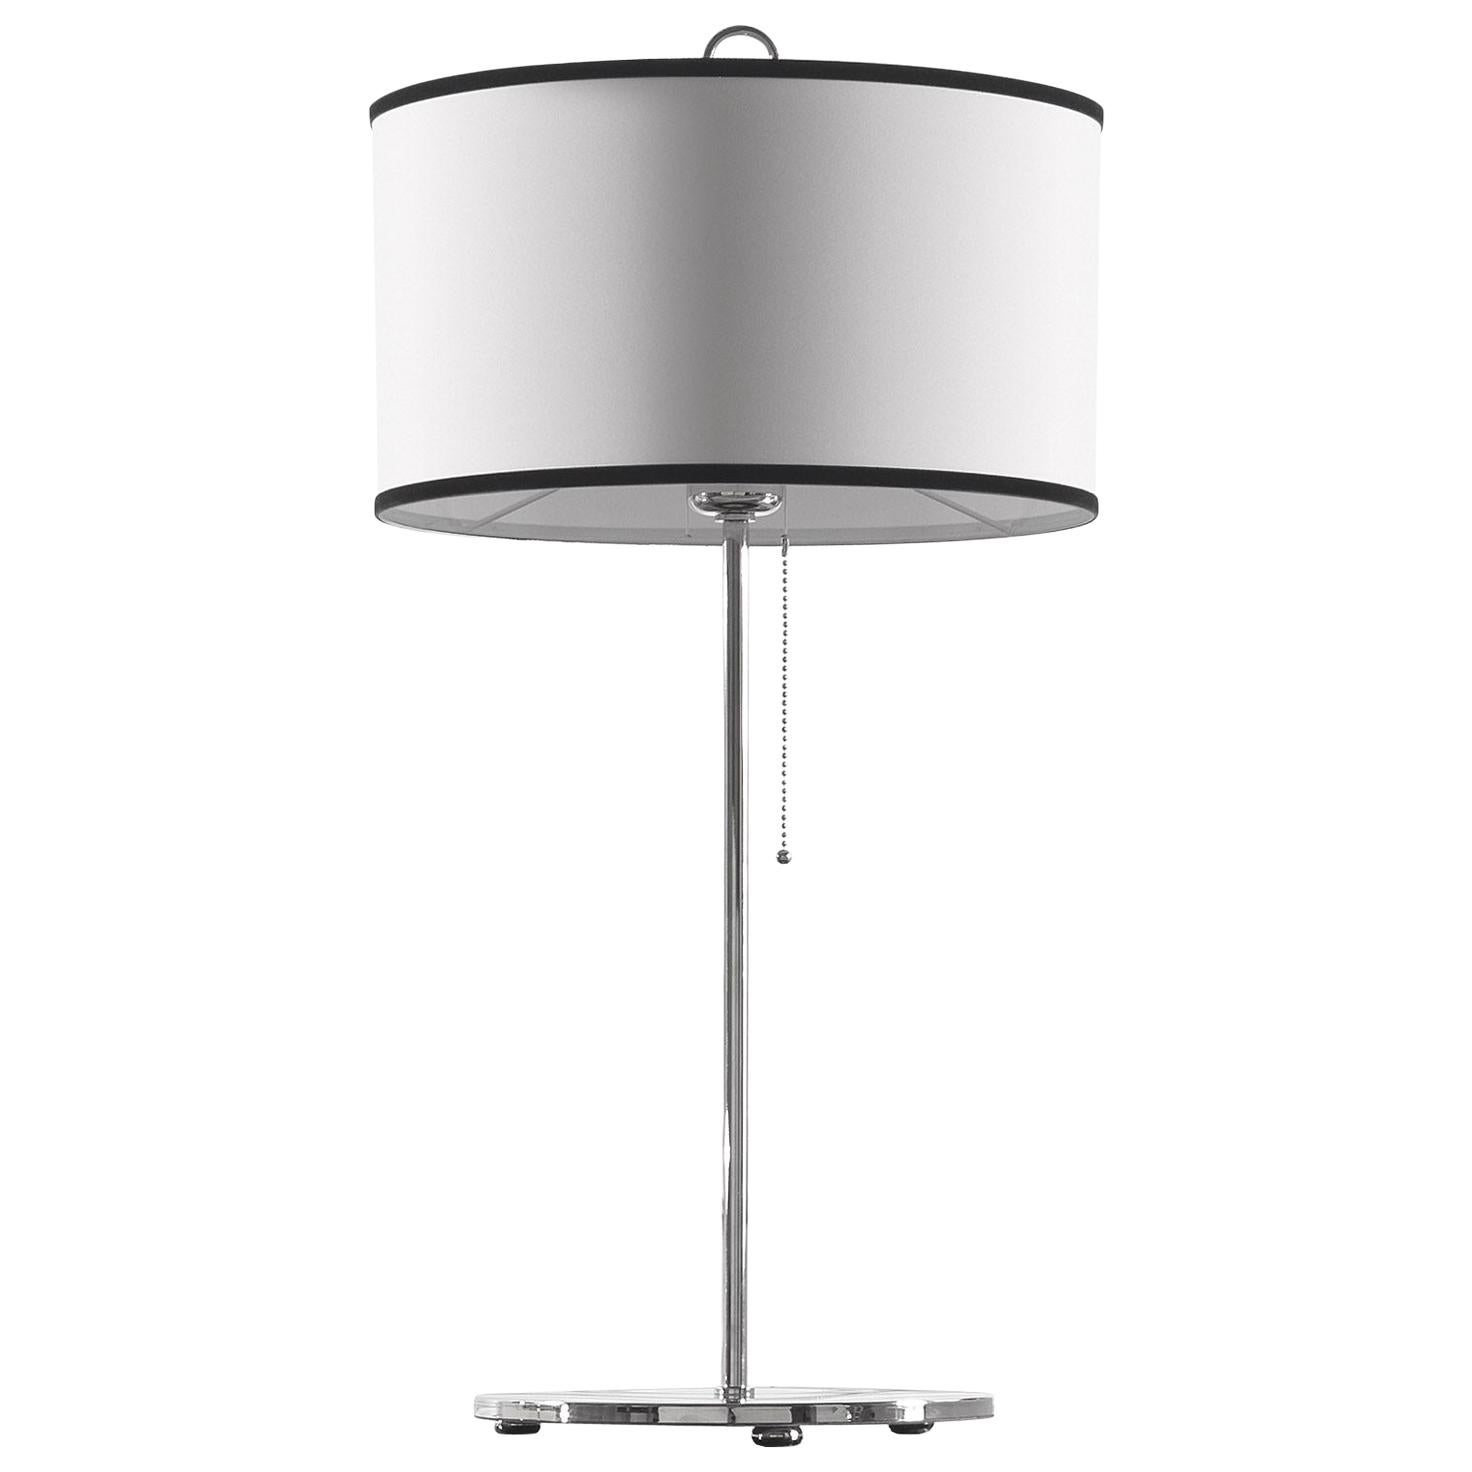 Gianfranco Ferré Home Cindy Table Lamp in Brass and Iron in Nickel Finish